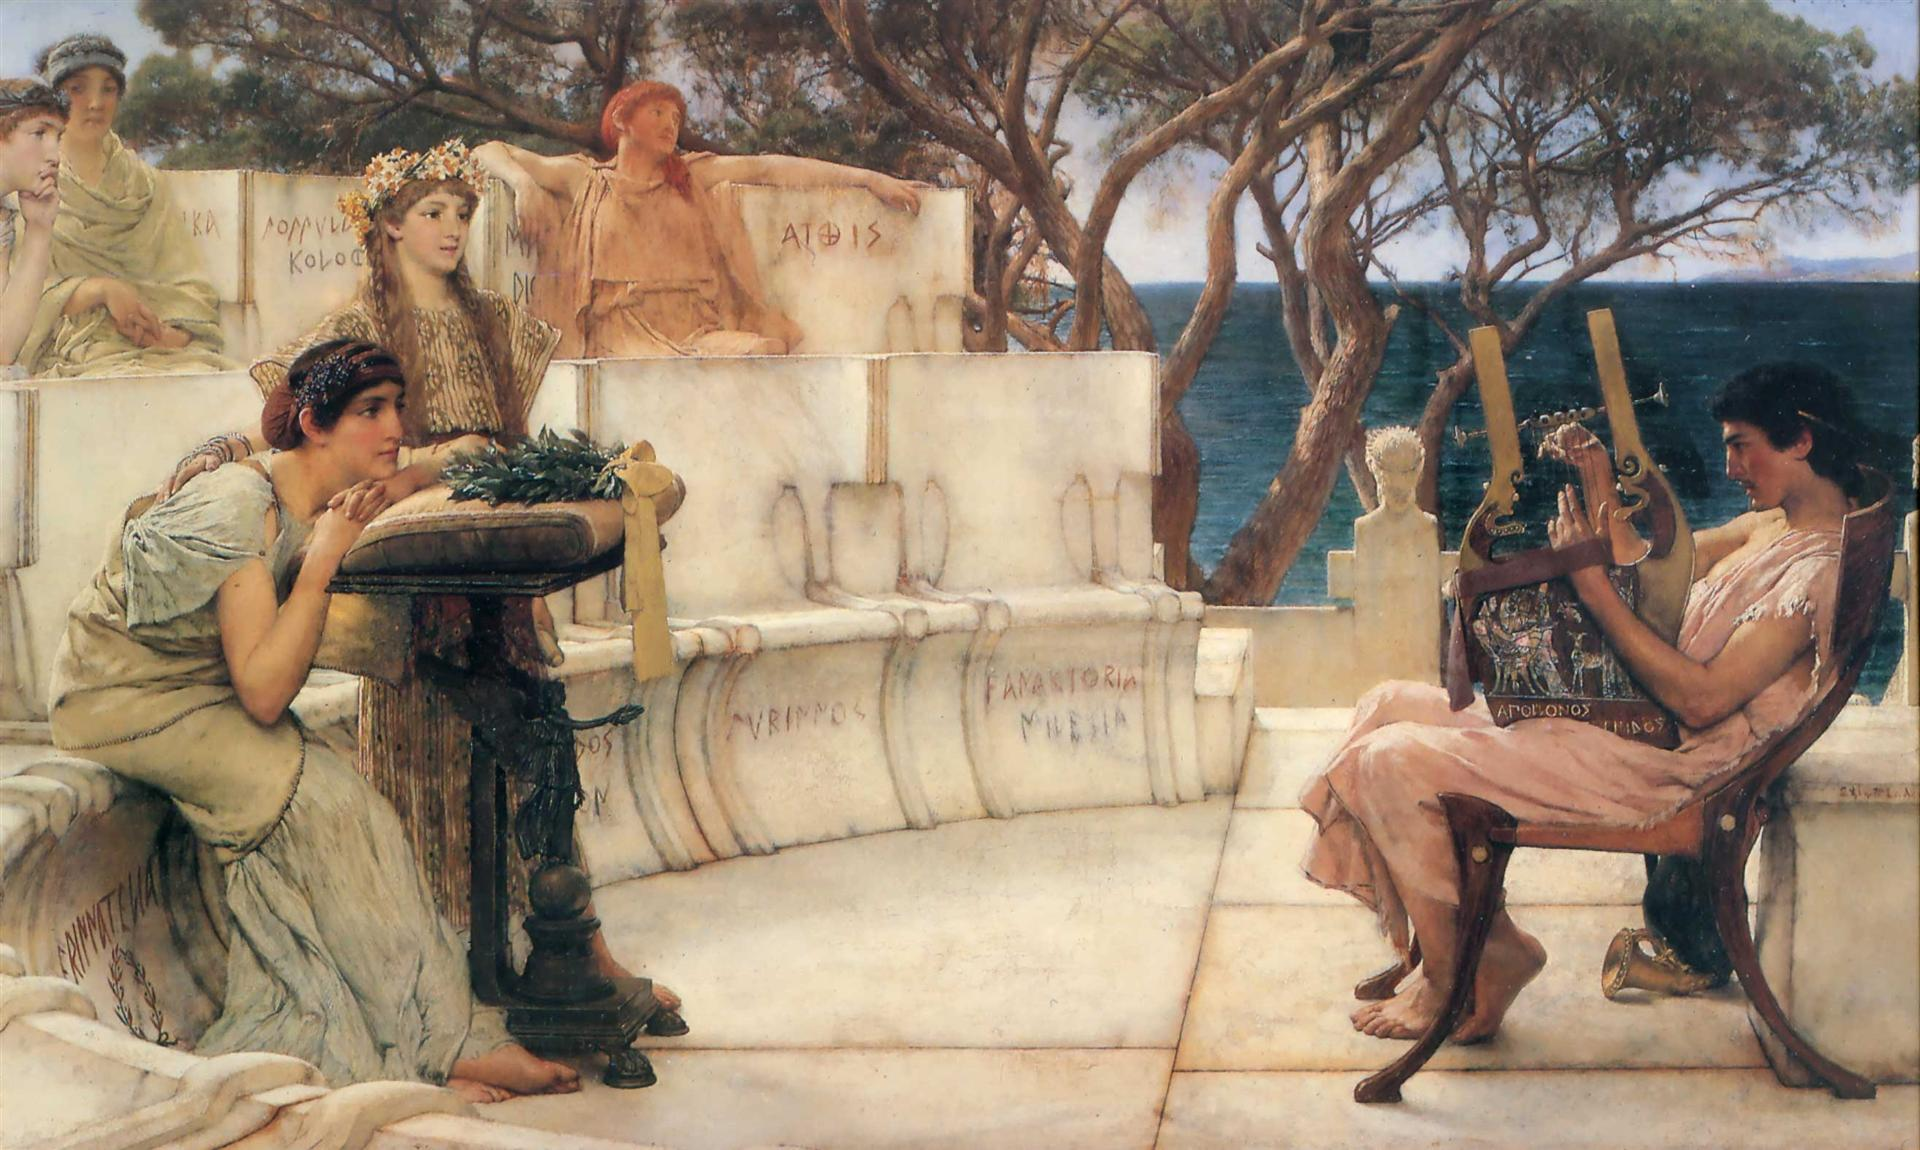 Sappho and Alcaeus, 1881 - Sir Lawrence Alma-Tadema